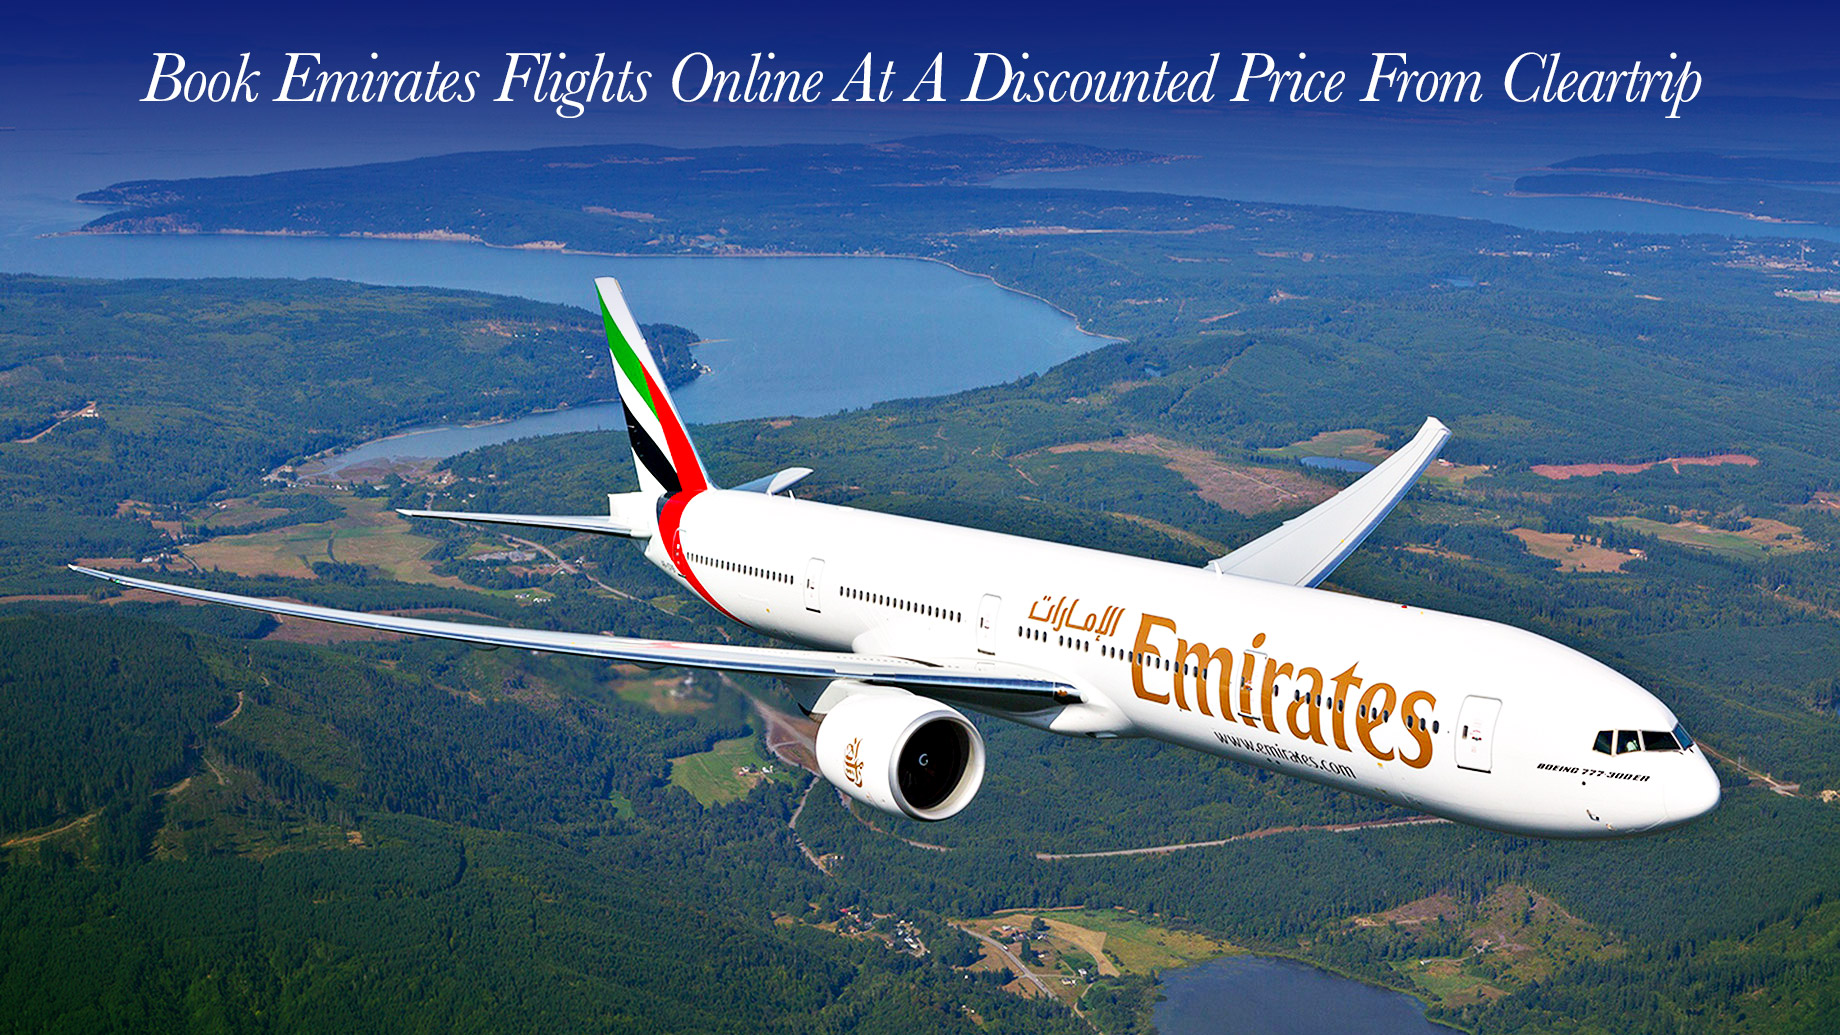 Book Emirates Flights Online At A Discounted Price From Cleartrip